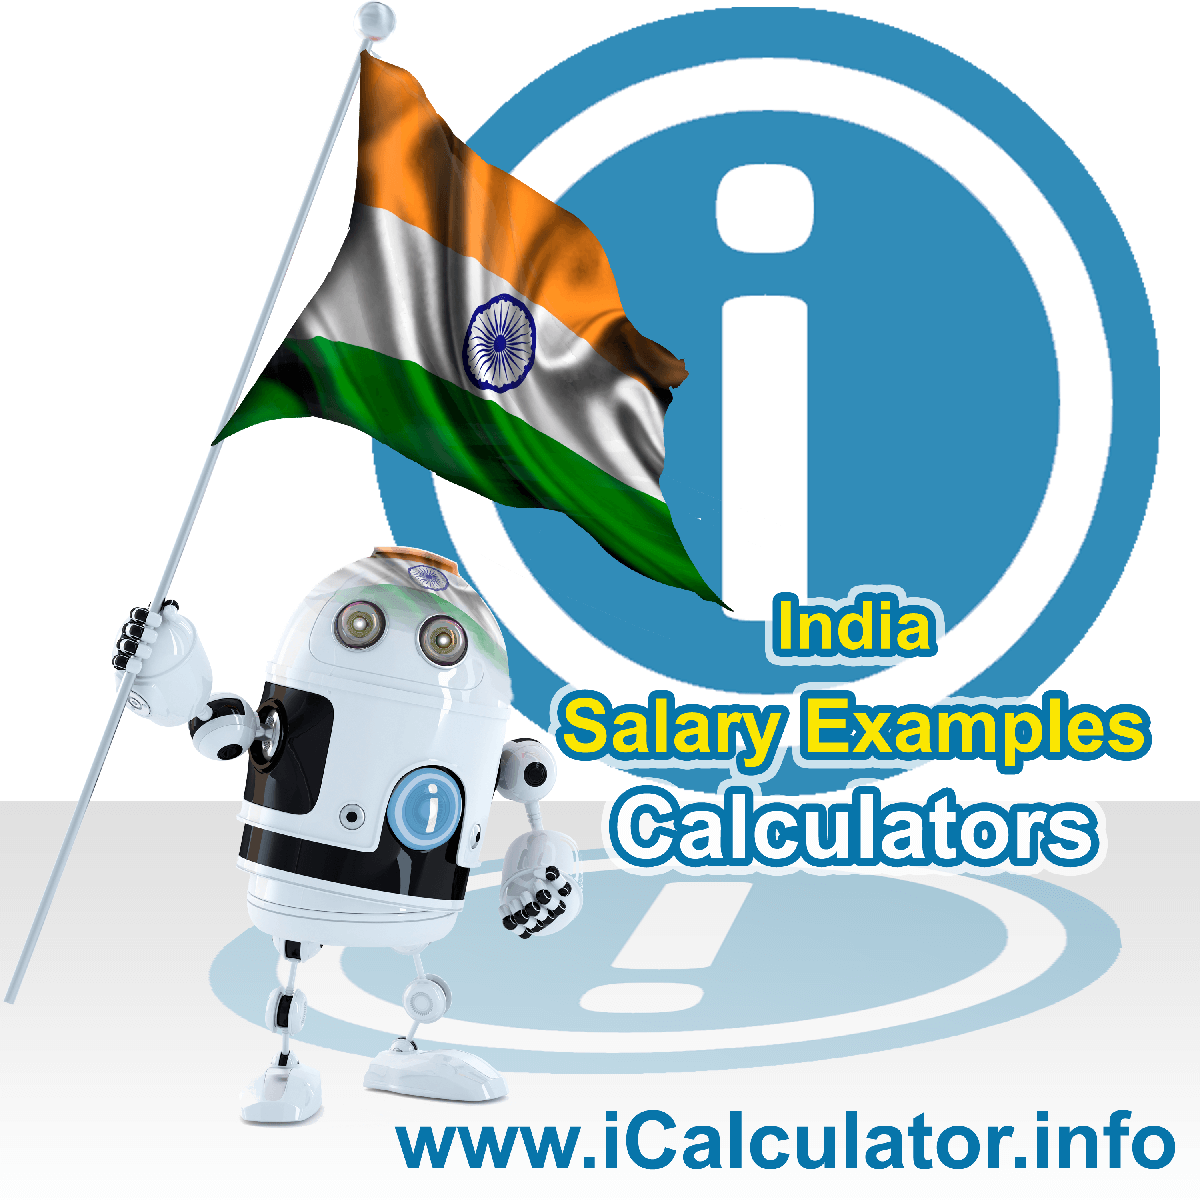 India Income Tax Example for ₹39,00,000.00 Salary. This image shows the flag of India and information relating to the tax formula for the India Income Tax Calculator used to create this payroll example for India